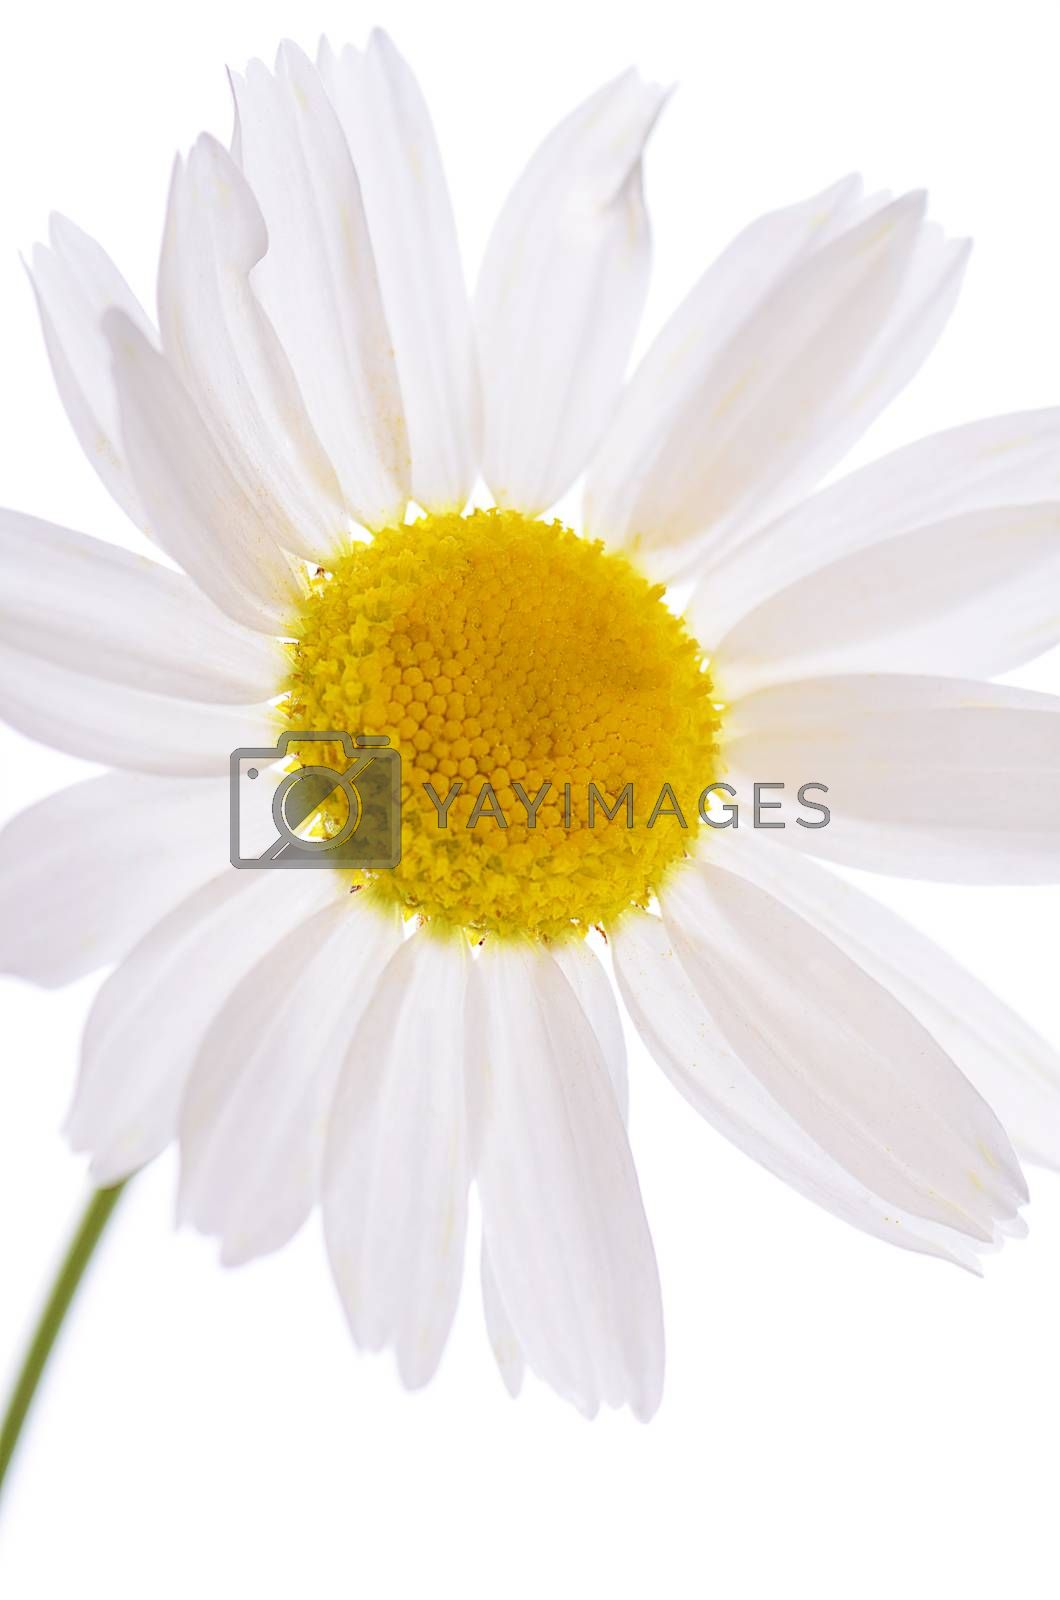 Royalty free image of The beautiful daisy isolated on white by SvetaVo